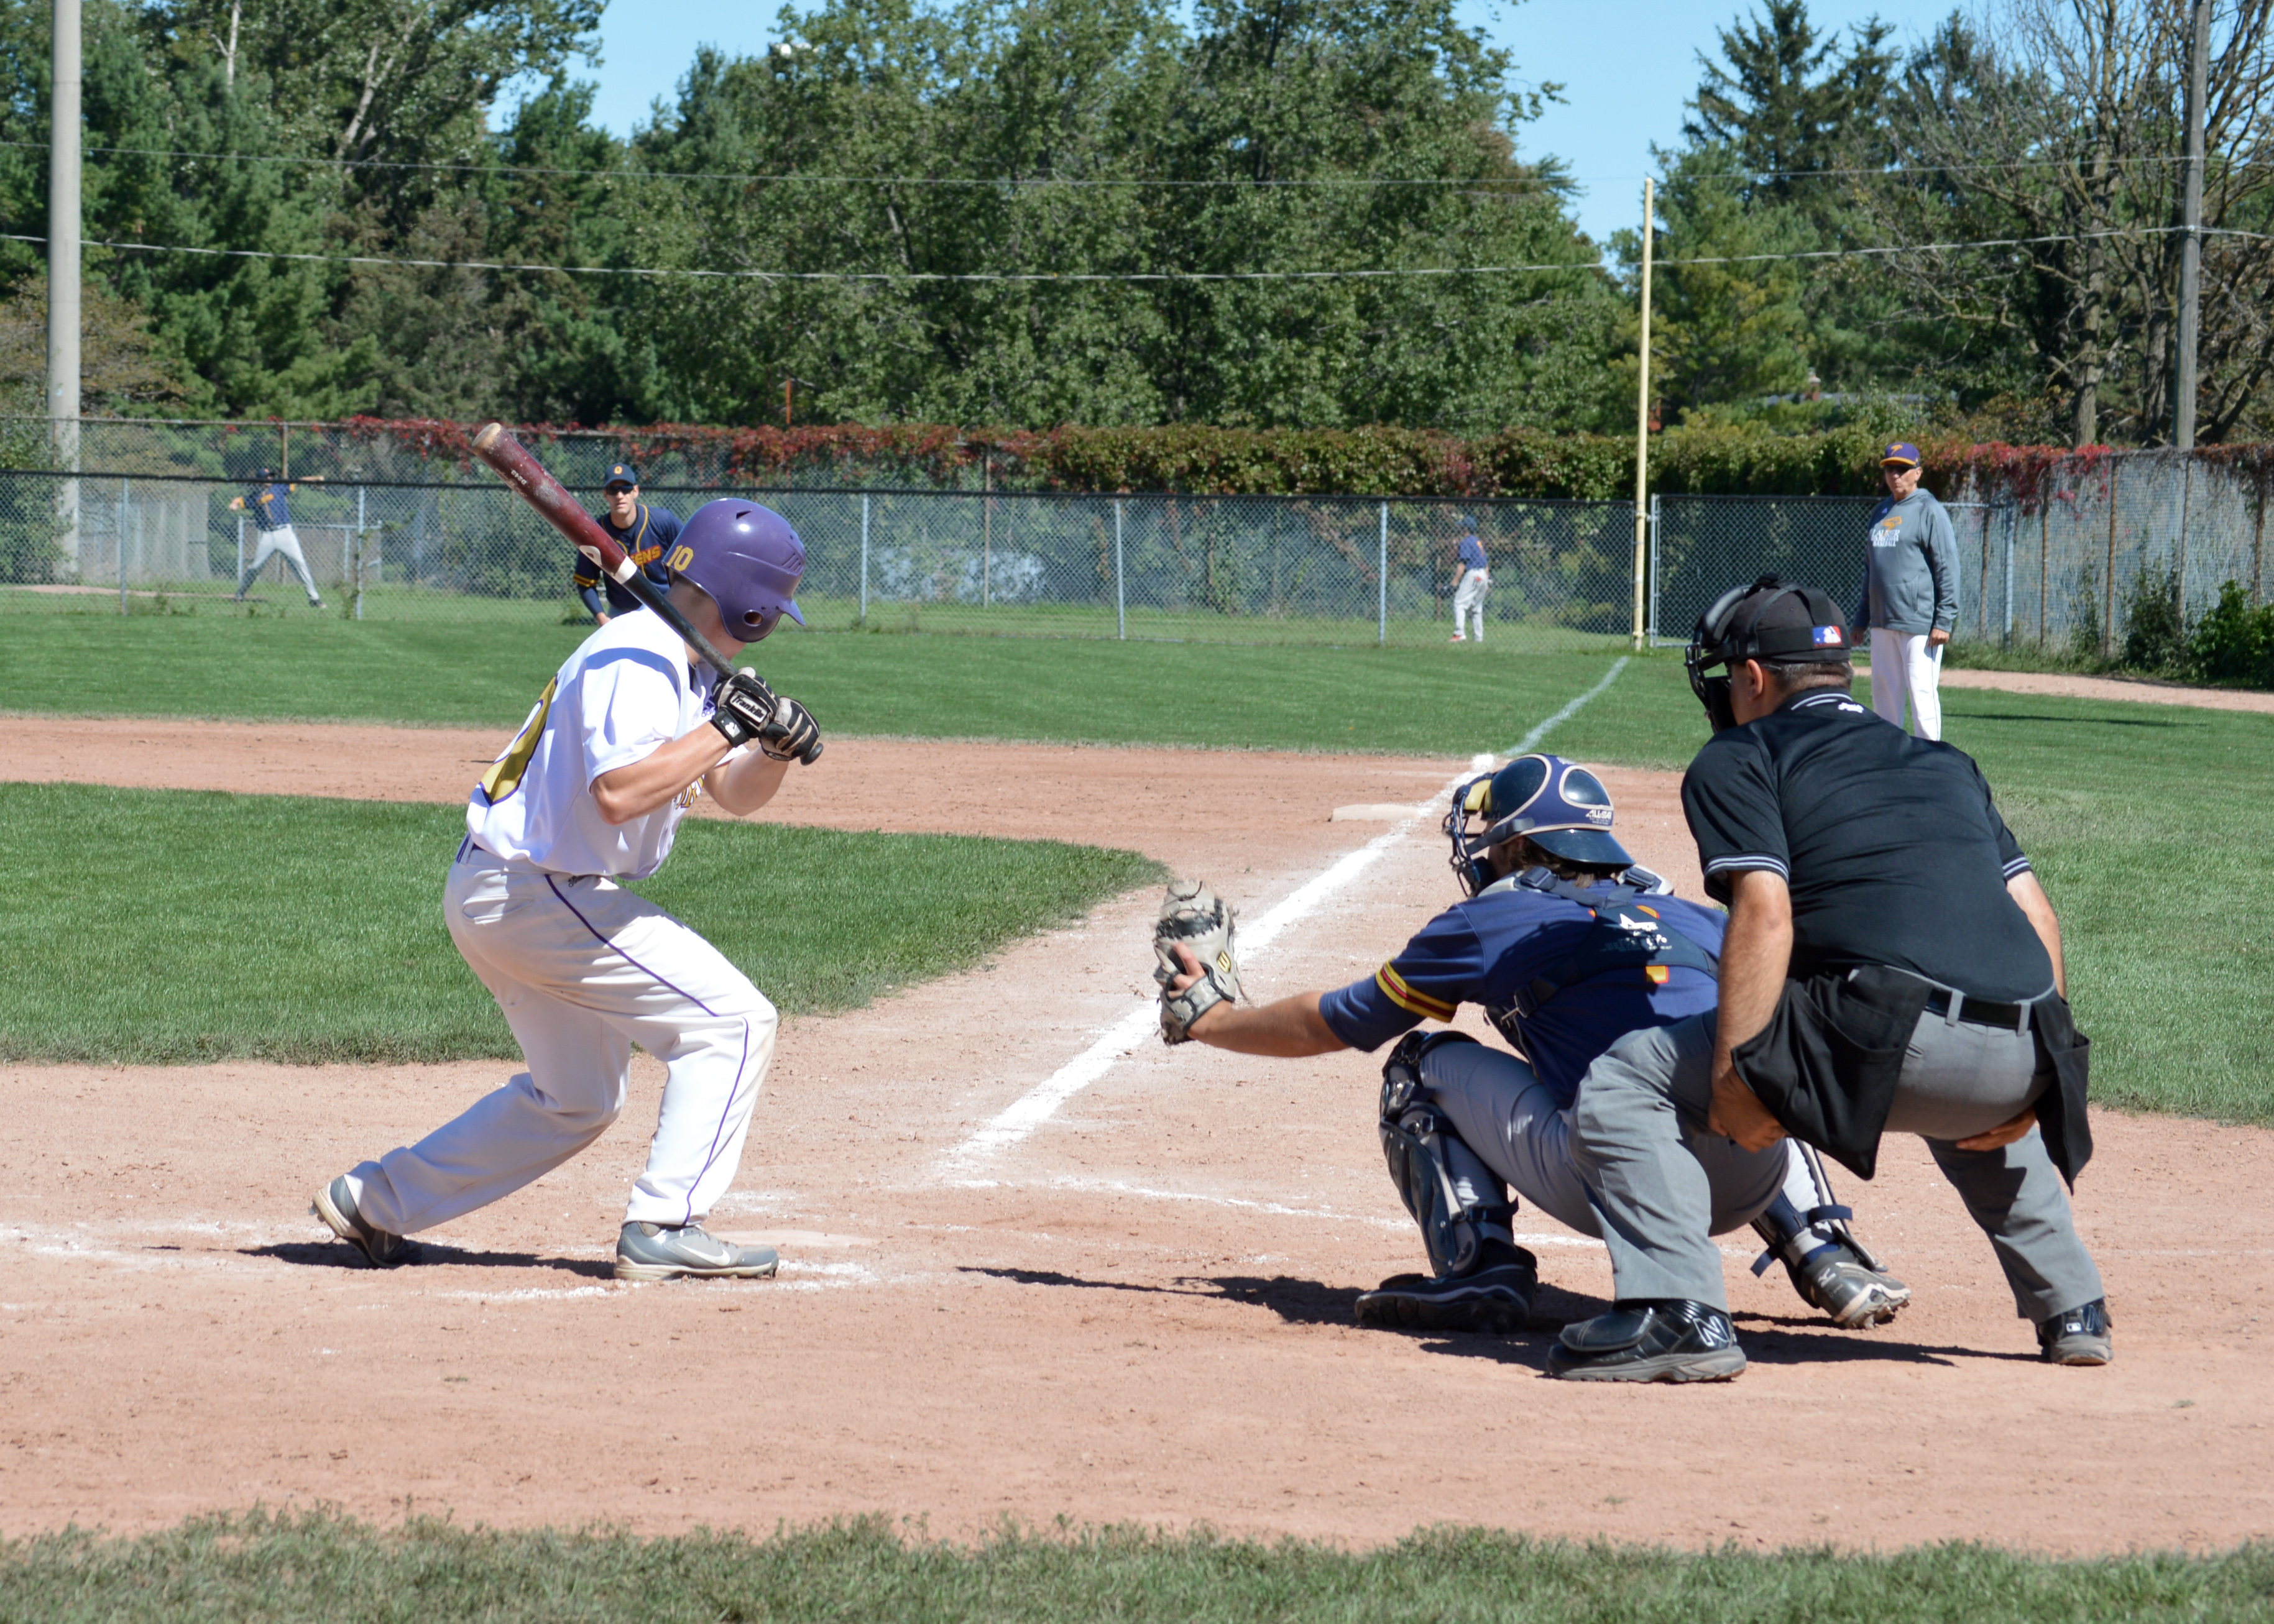 Laurier swept their doubleheader against Queen's over the weekend. (Photo by Andriana Vinnitchok)